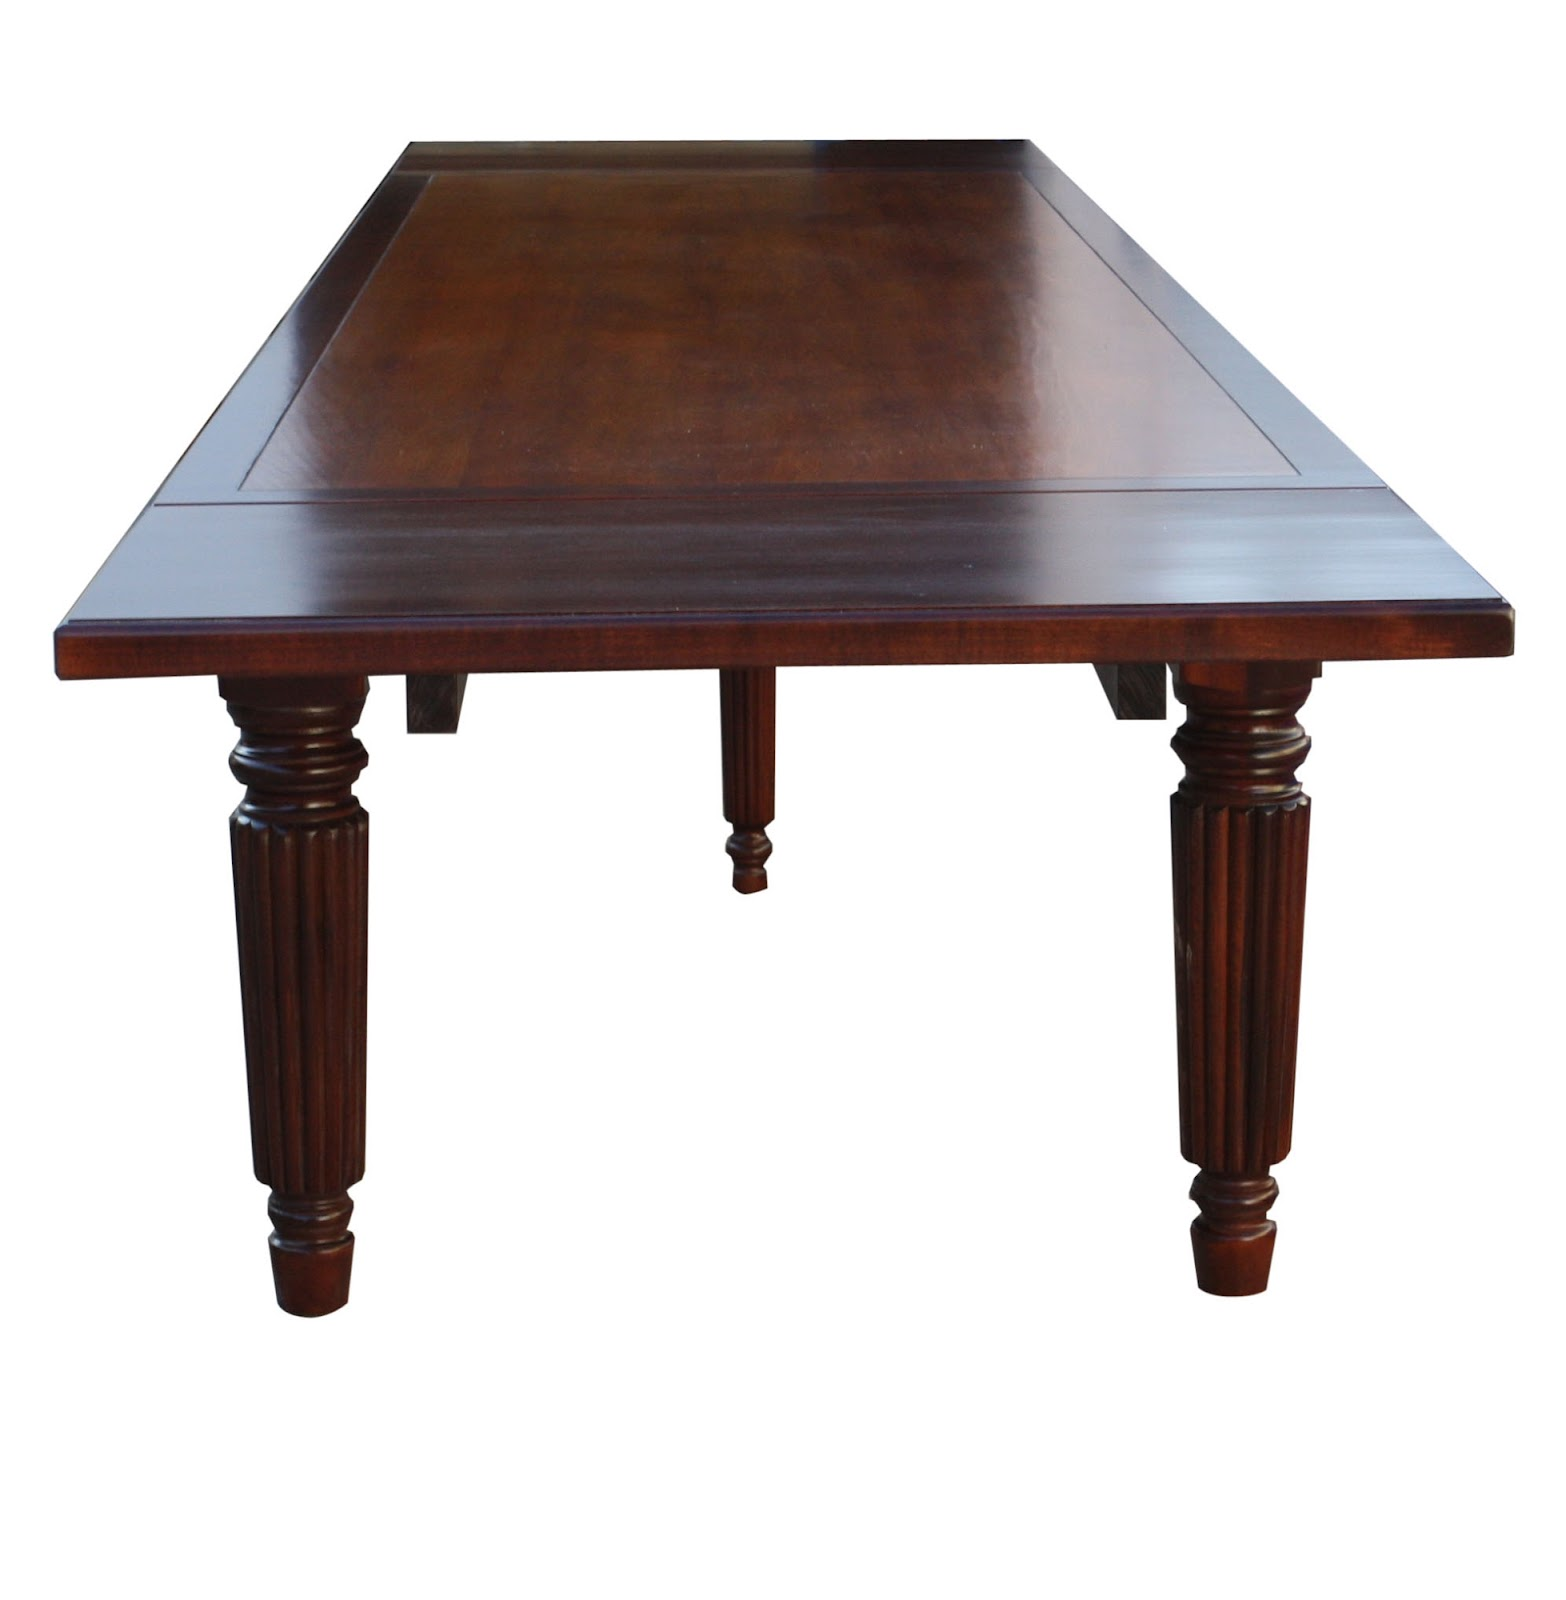 http://www.furnitate.com/nnh-content/uploads/cu/custom-fluted-leg-dining-tablep.jpg